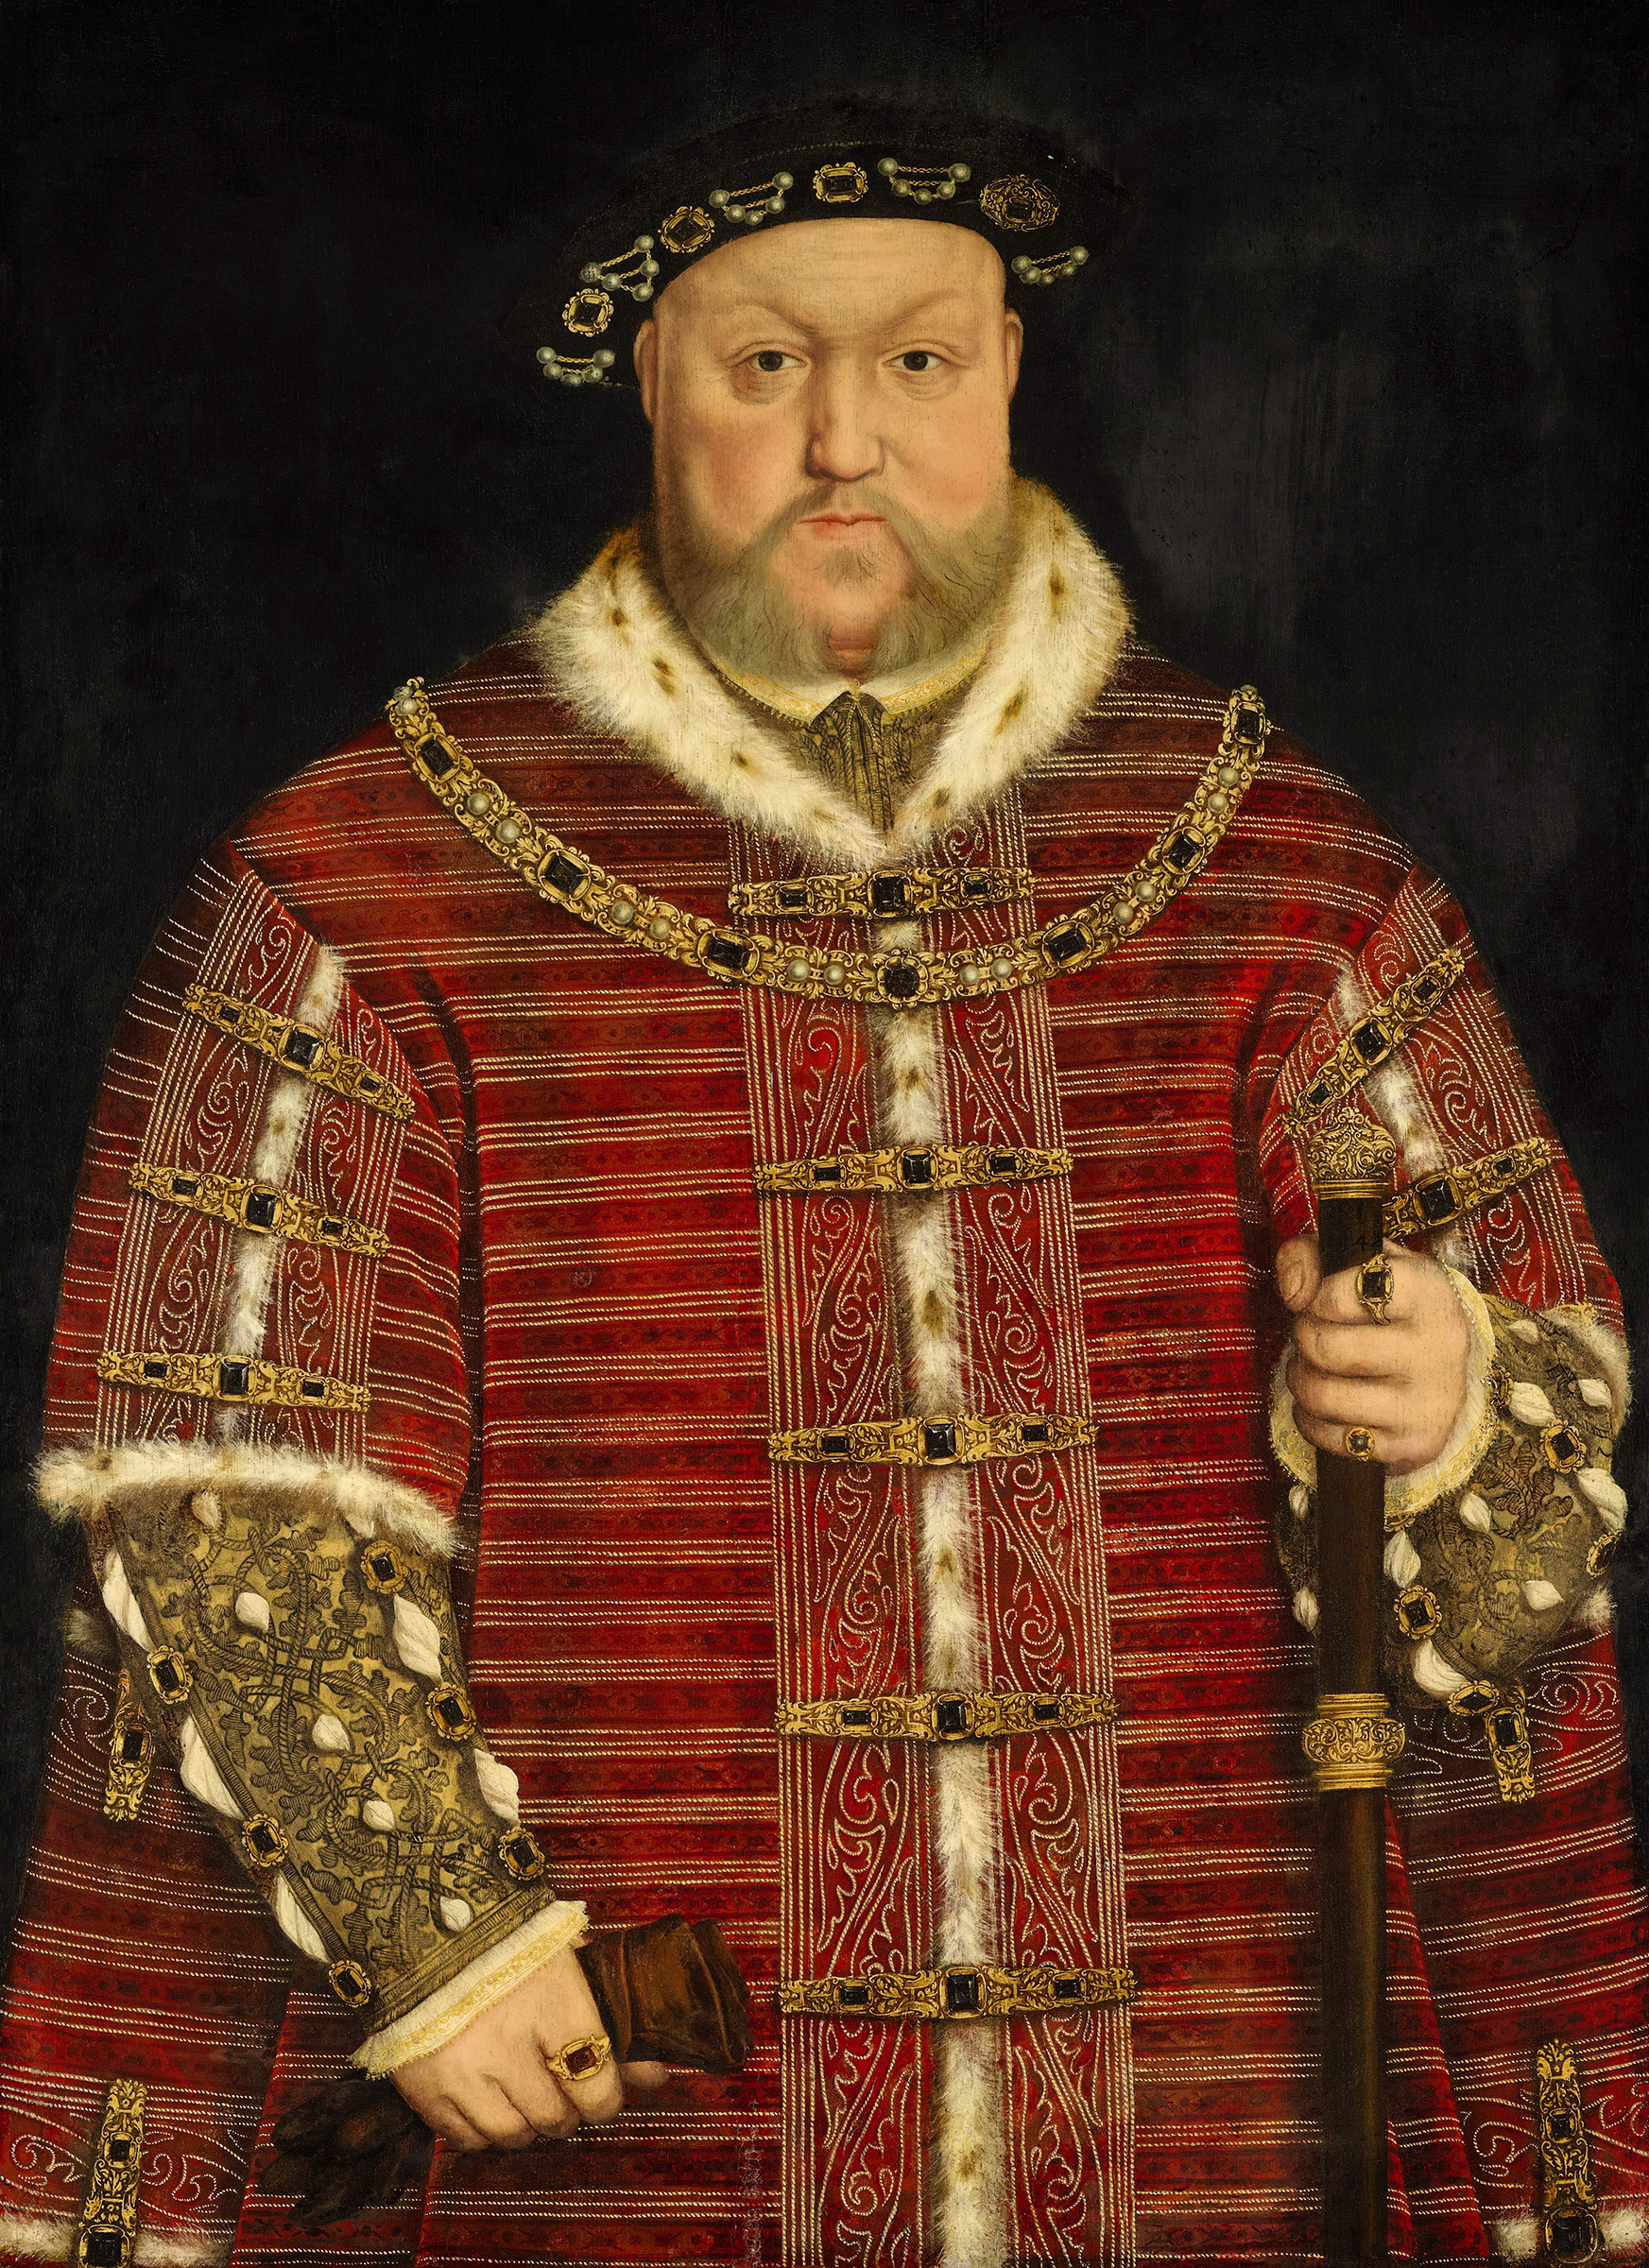 Portrait of Henry VIII (1491-1547), King of England (1509-1547), Lord of Ireland (1509-1541), King of Ireland (1541-1547), 1542 | Portraits of Kings